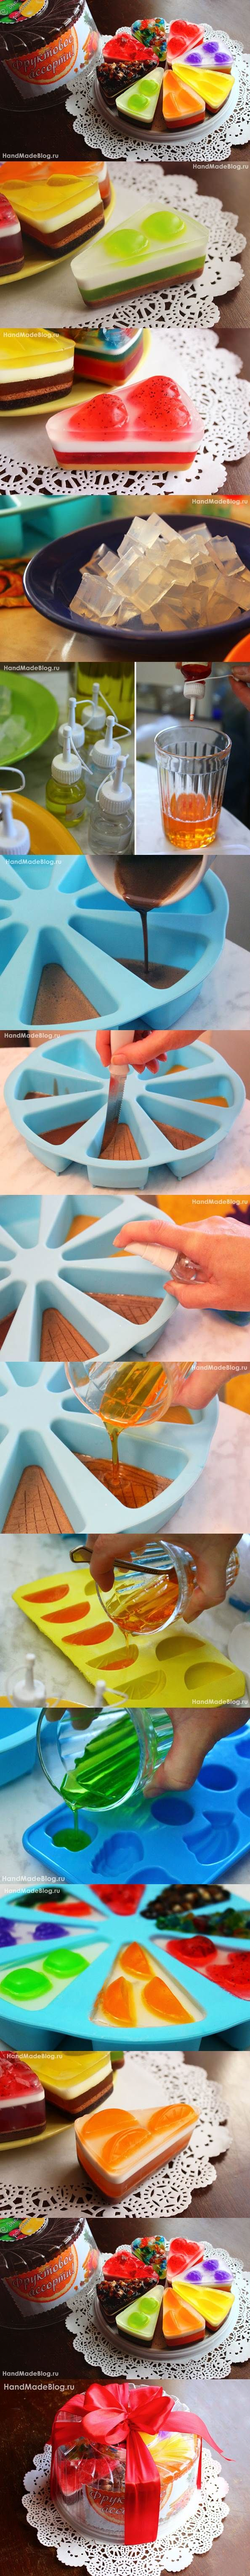 DIY Beautiful Cake of Soap | iCreativeIdeas.com Like Us on Facebook ==> https://www.facebook.com/icreativeideas